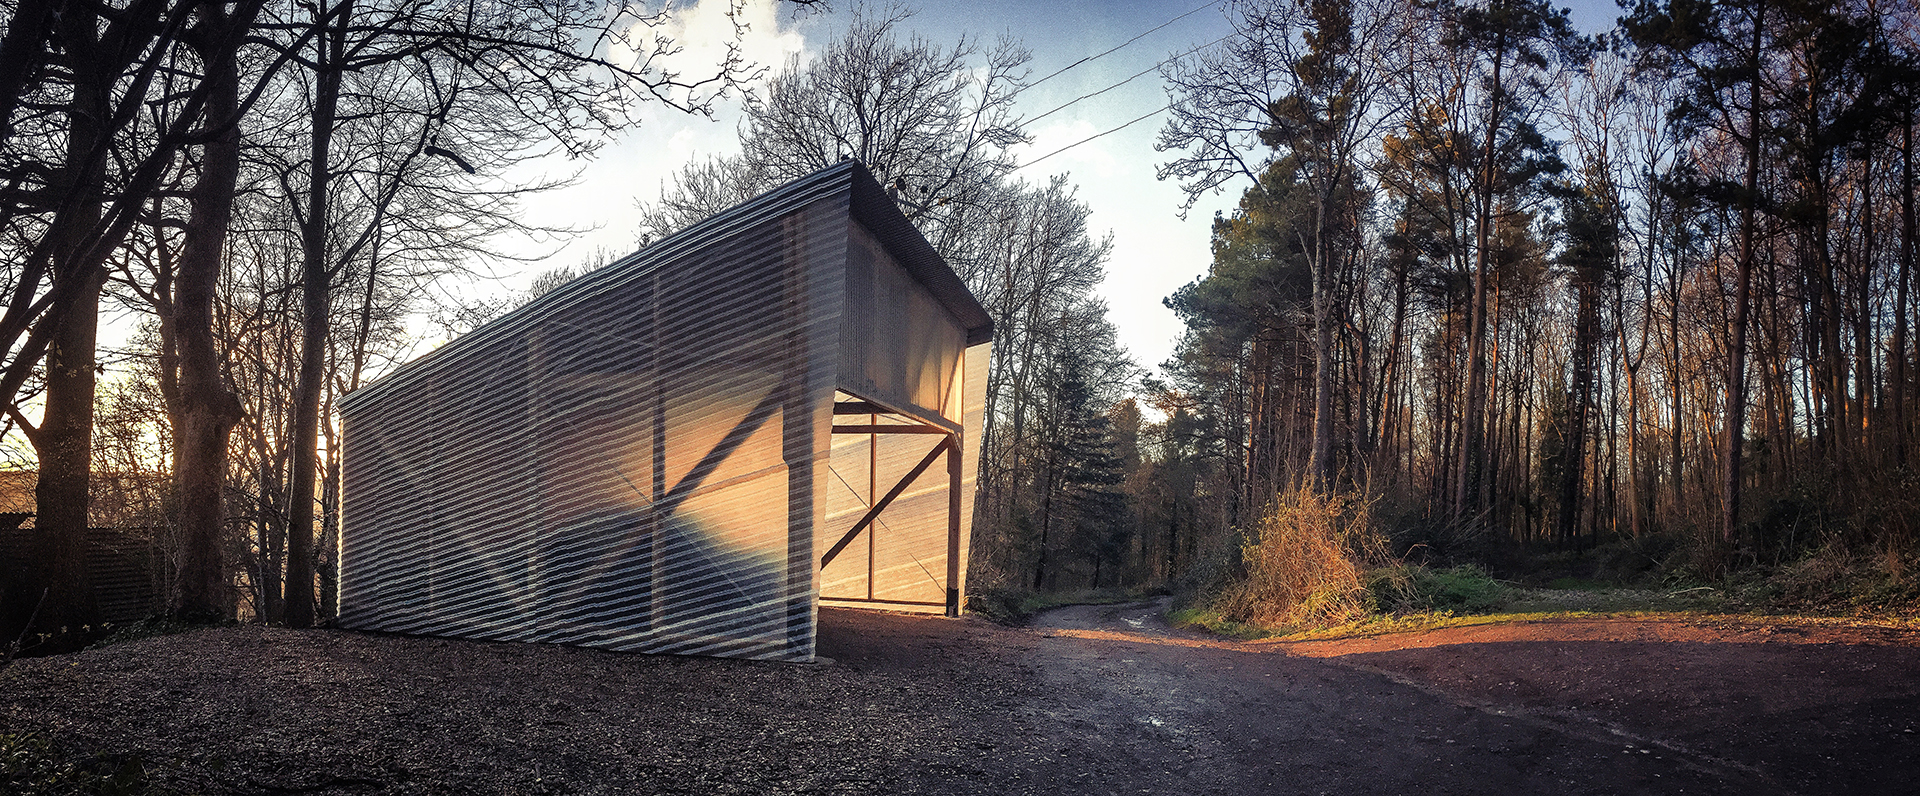 Laboratory among the trees with wooden structure and transparent walls fiberglass corrugated steel